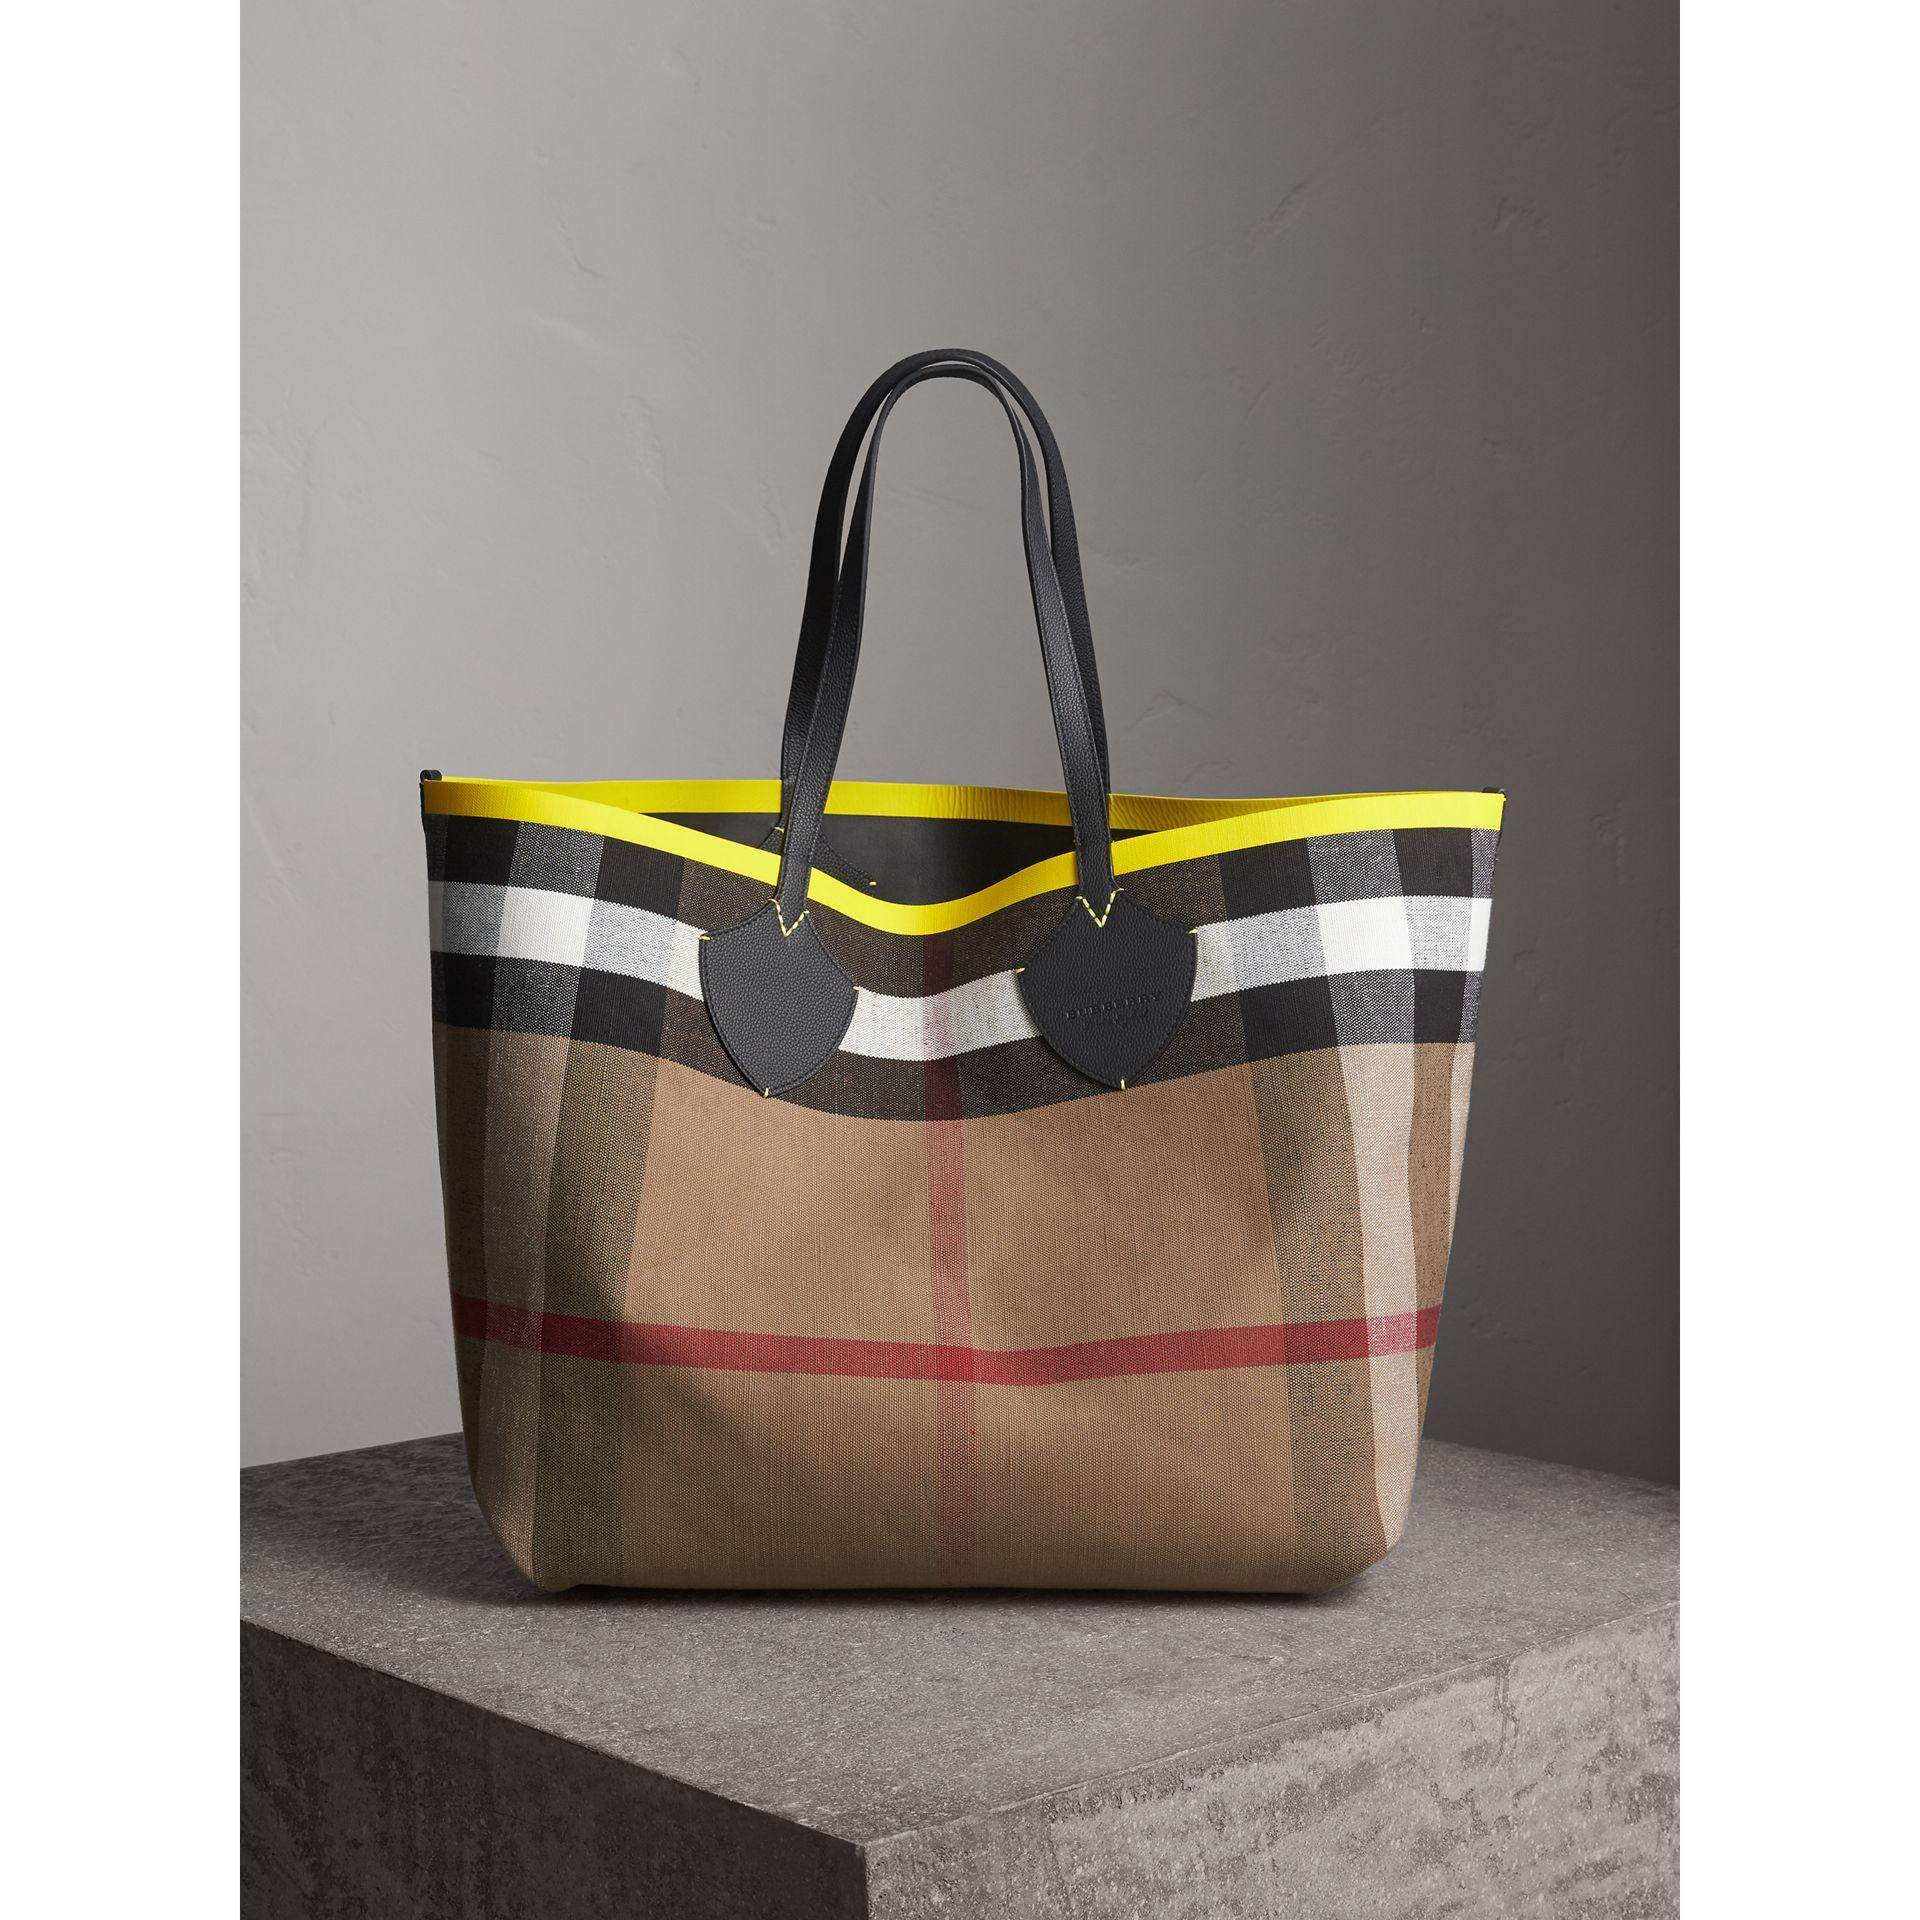 c208d9af8900 Burberry The Giant Reversible Tote In Canvas Check And Leather In  Black Neon Yellow